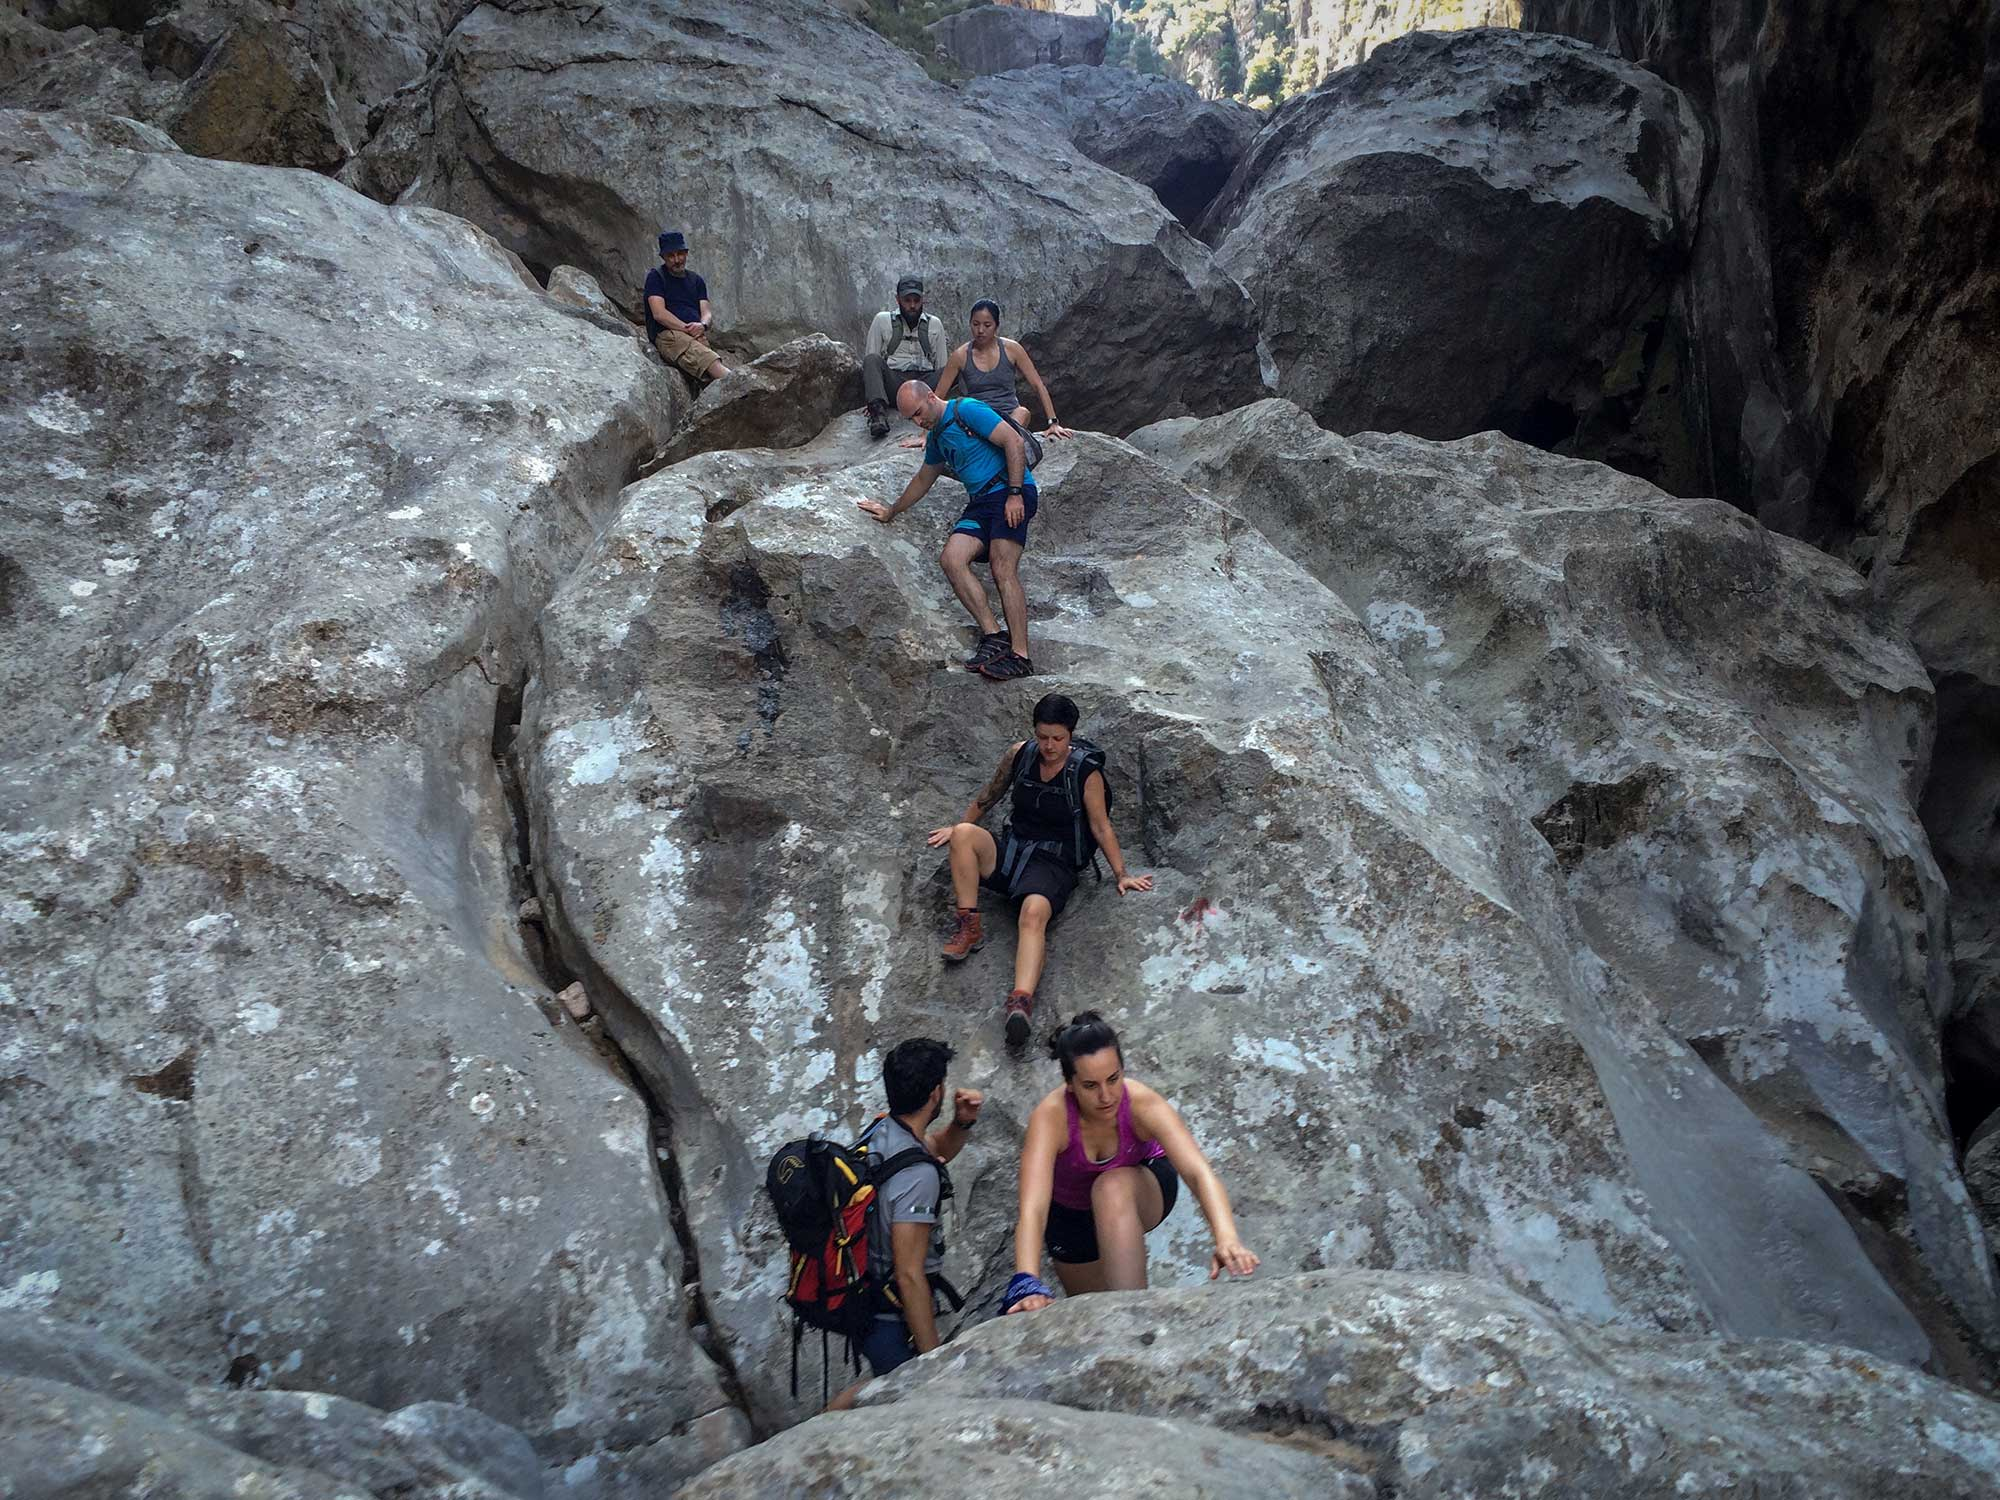 Shortly after reaching the canyon floor, we encountered sections that required some light scrambling.